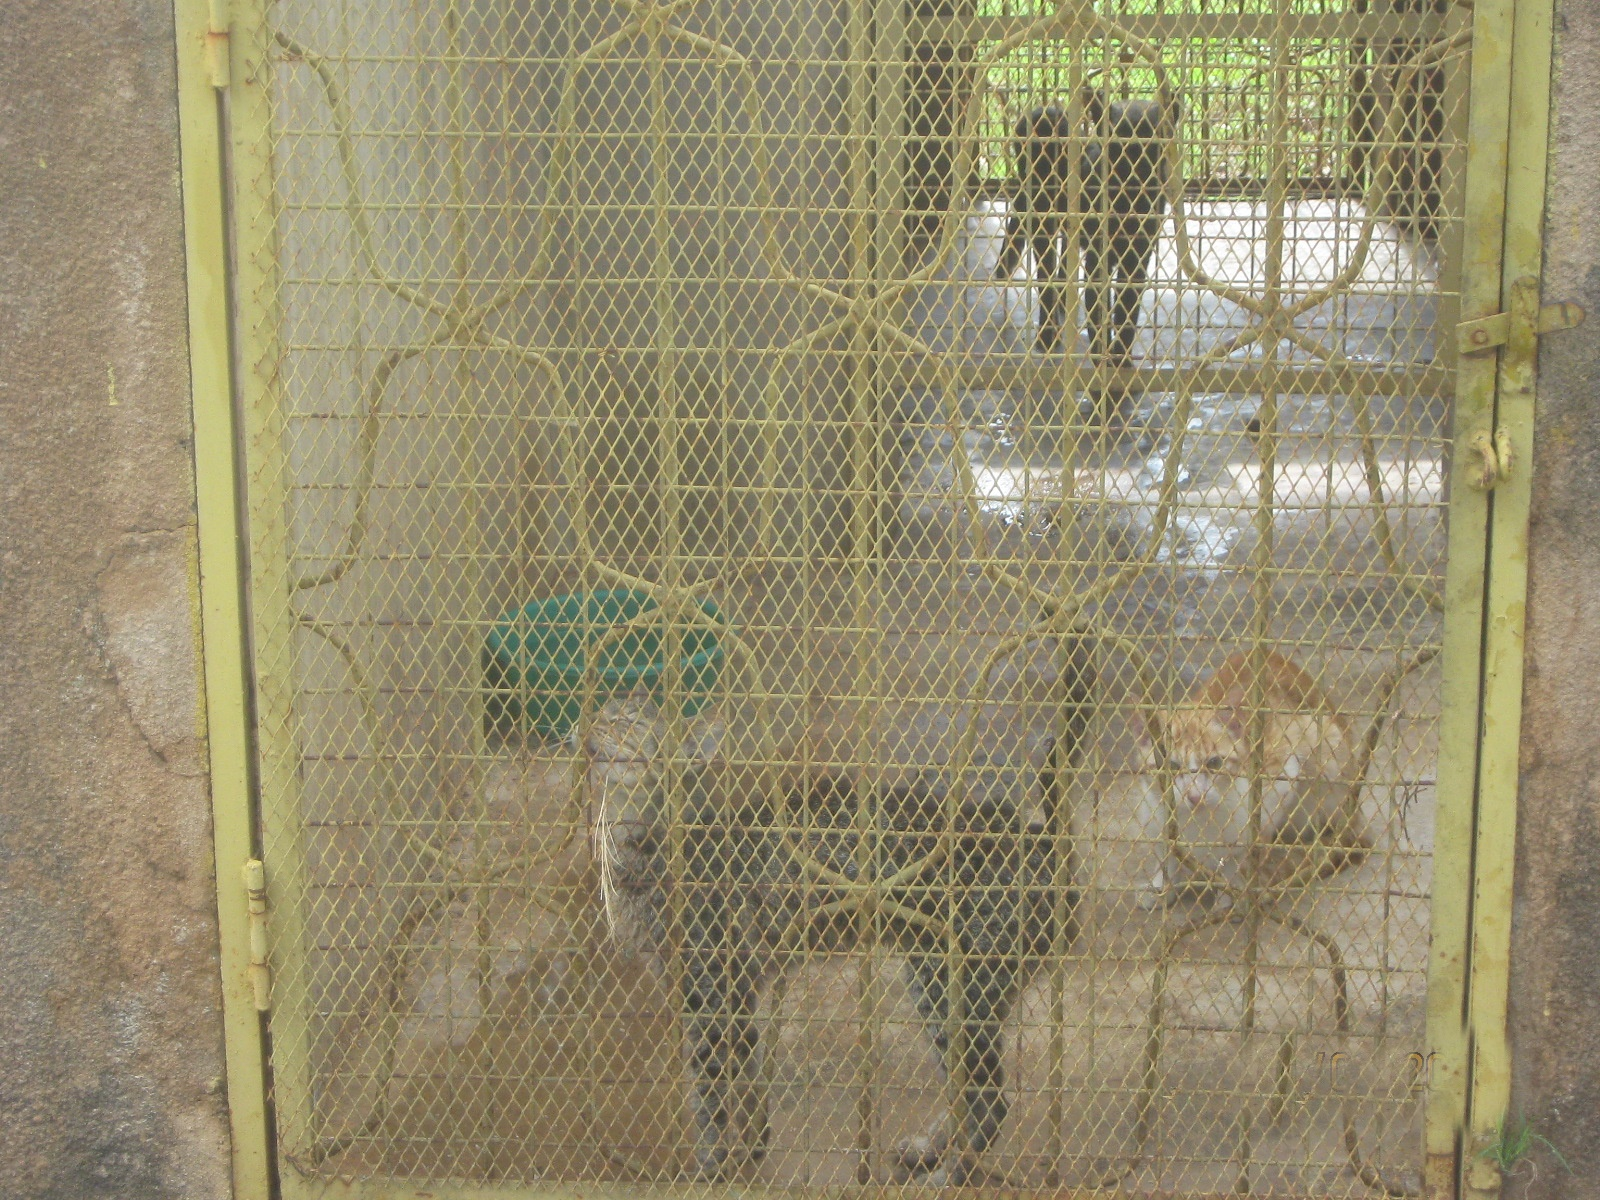 cats were kept in cannels with adequate food and water